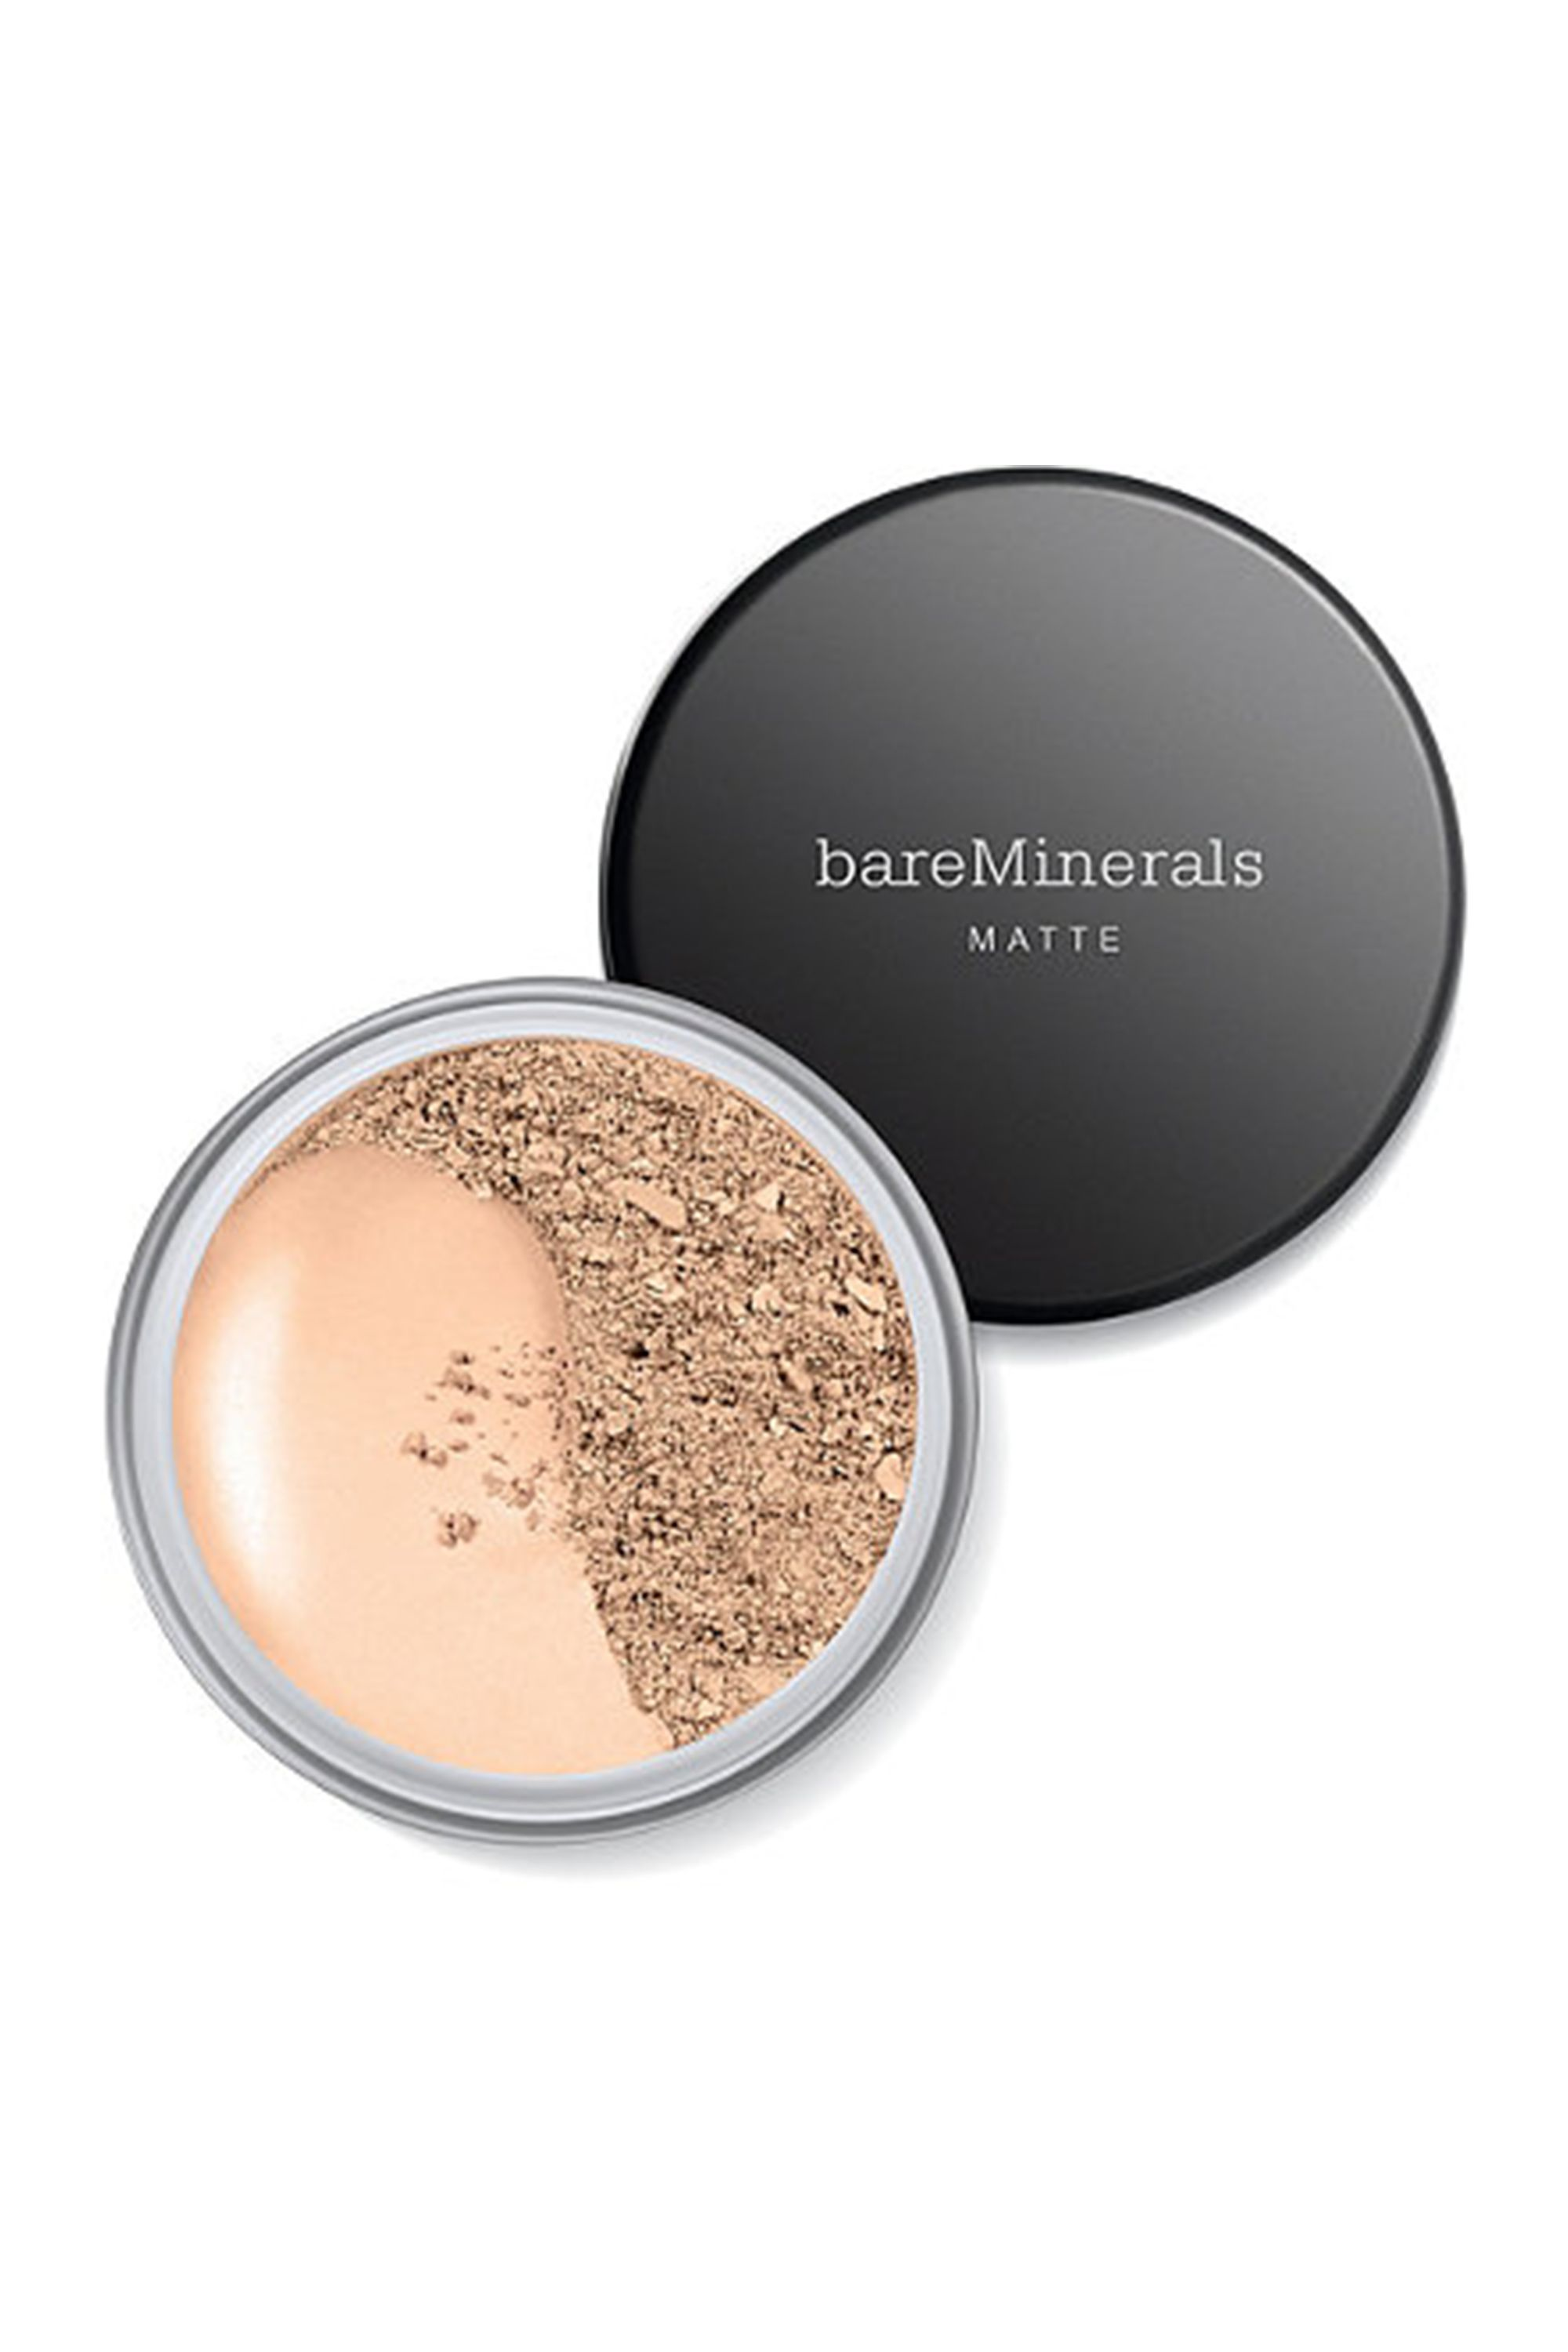 """<p>          The OG foundation for sensitive types is upping the shade range of its cult fave mattifying loose powder to 30. Whether you keep it light or pile it on for more coverage, the featherweight formula will look like you're wearing basically nothing at all.  <span class=""""redactor-invisible-space"""" data-verified=""""redactor"""" data-redactor-tag=""""span"""" data-redactor-class=""""redactor-invisible-space""""></span></p><p><strong data-redactor-tag=""""strong""""></strong></p><p><em data-redactor-tag=""""em"""" data-verified=""""redactor"""">$28.50, </em><a href=""""http://www.bareminerals.com/face-makeup/foundation/matte-foundation-broad-spectrum-spf-15/USmastermatte.html?dwvar_USmastermatte_SkinShade=Medium%20Beige%2012"""" data-tracking-id=""""recirc-text-link""""><em data-redactor-tag=""""em"""" data-verified=""""redactor"""">bareminerals.com</em></a></p>"""